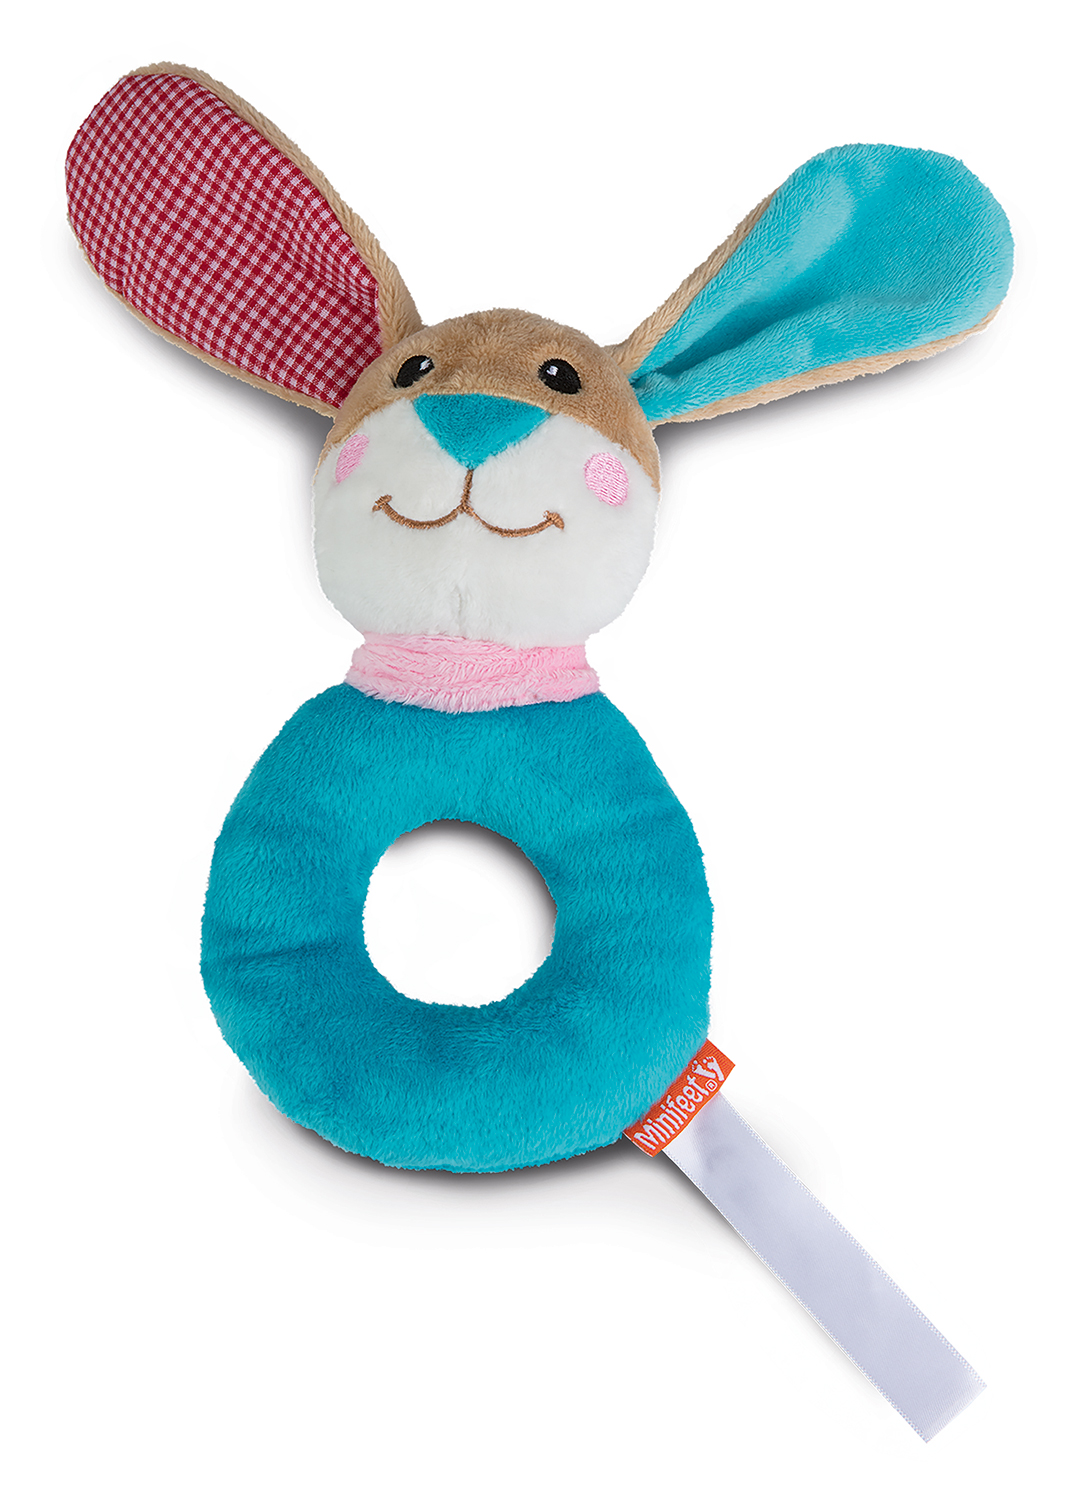 grasp toy rabbit with rattle, round